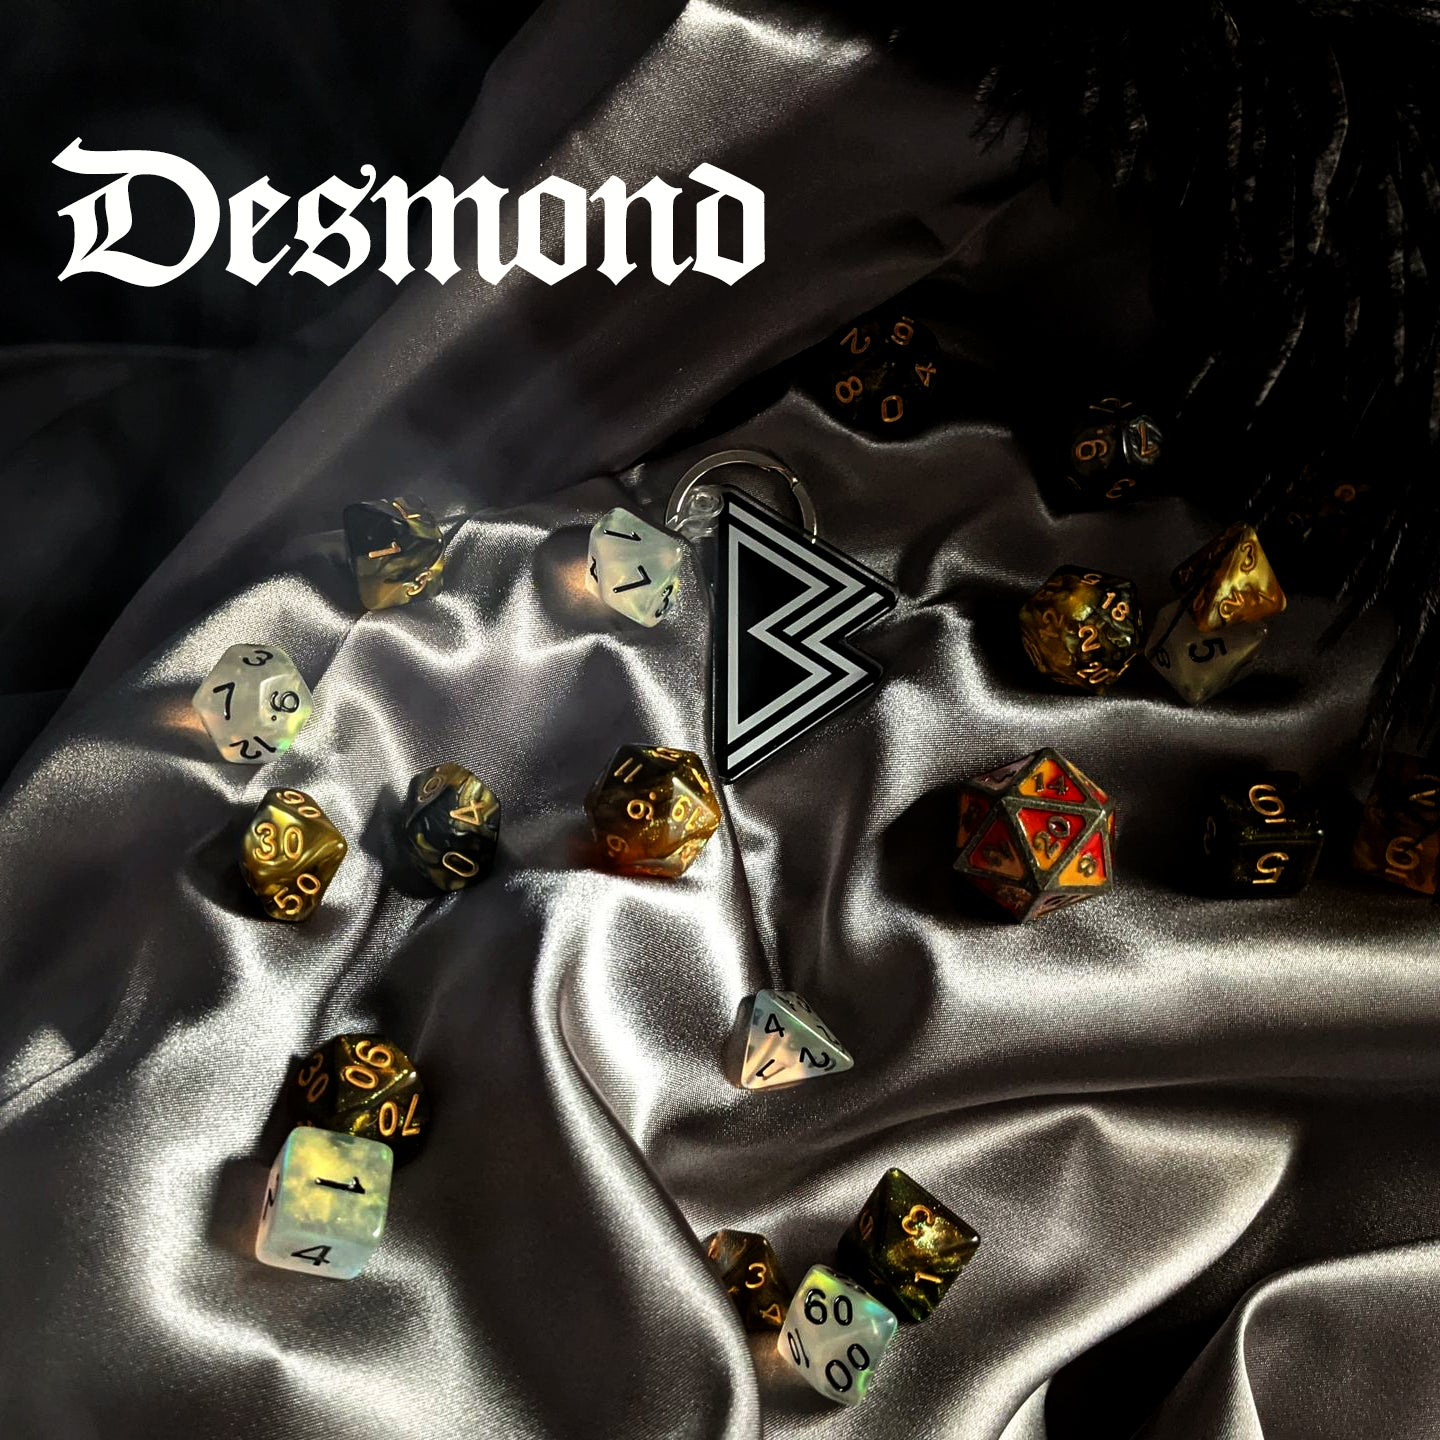 The Desmond Dice Palette